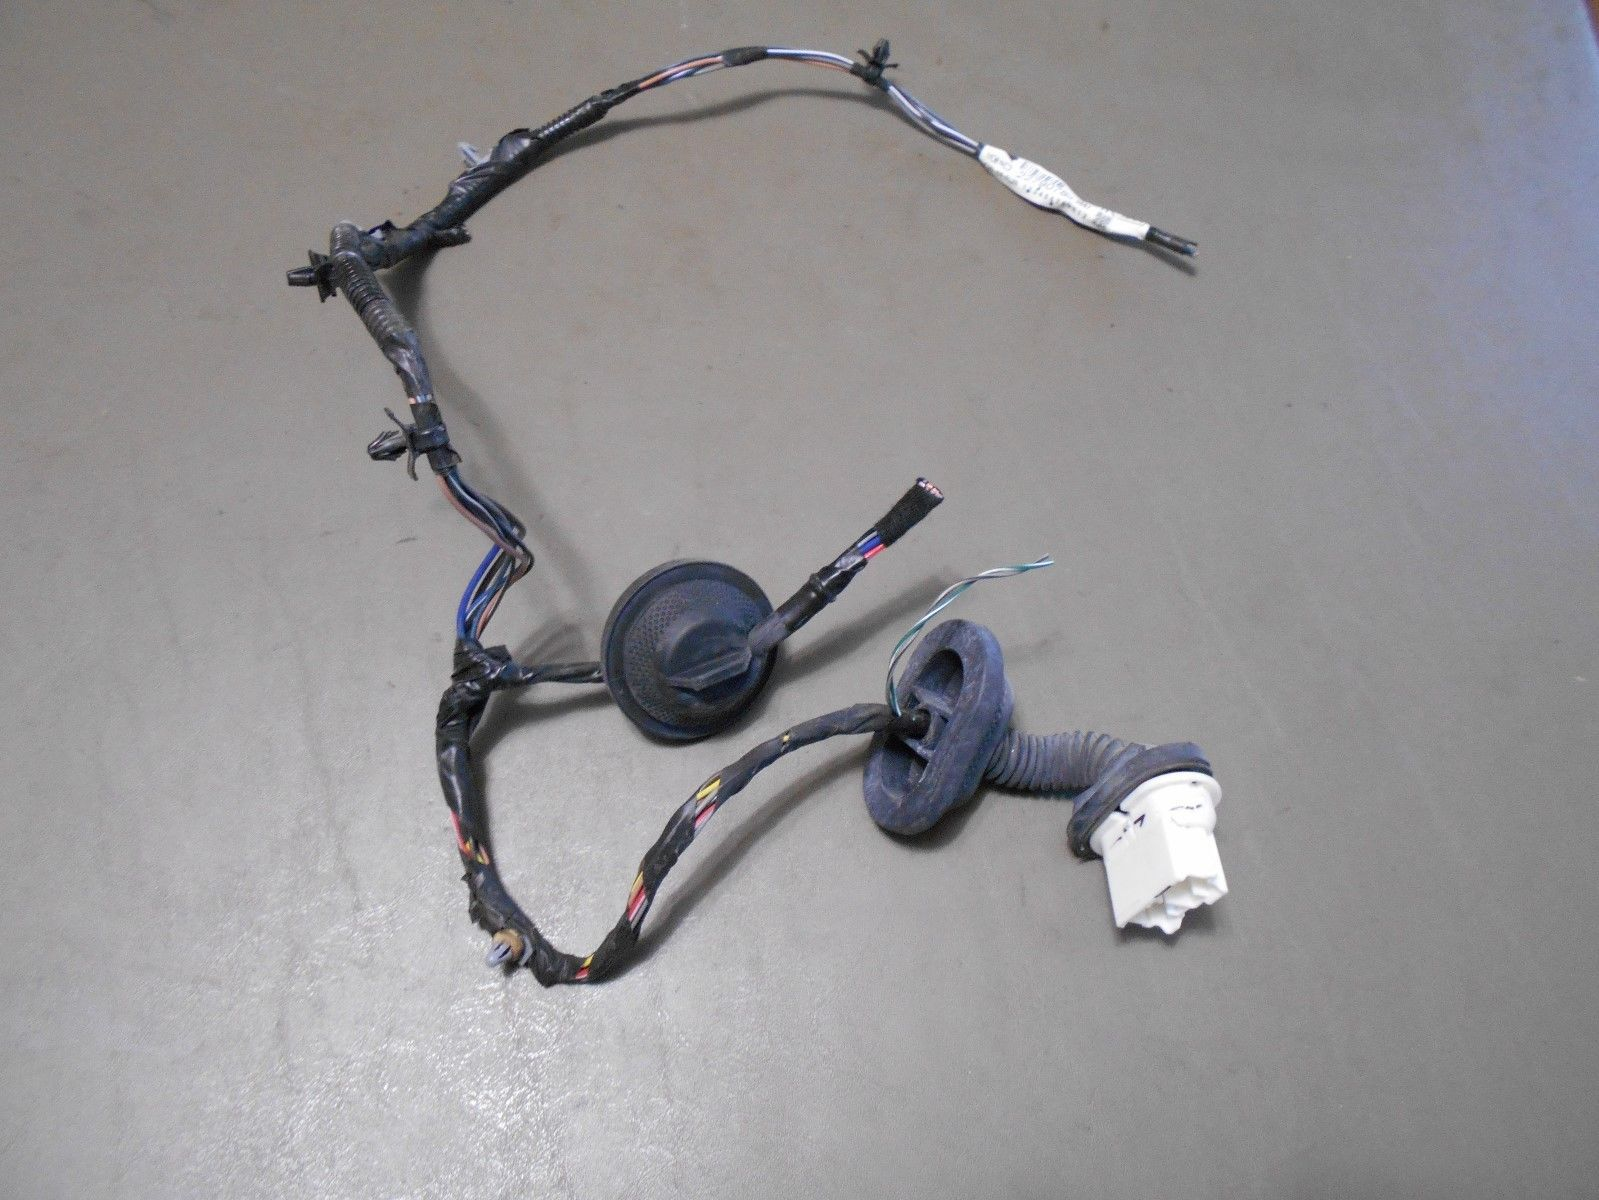 Primary image for 12 2012 Chevy Equinox Drivers Side Rear Door Plugs Into Car Body Pigtail Wires